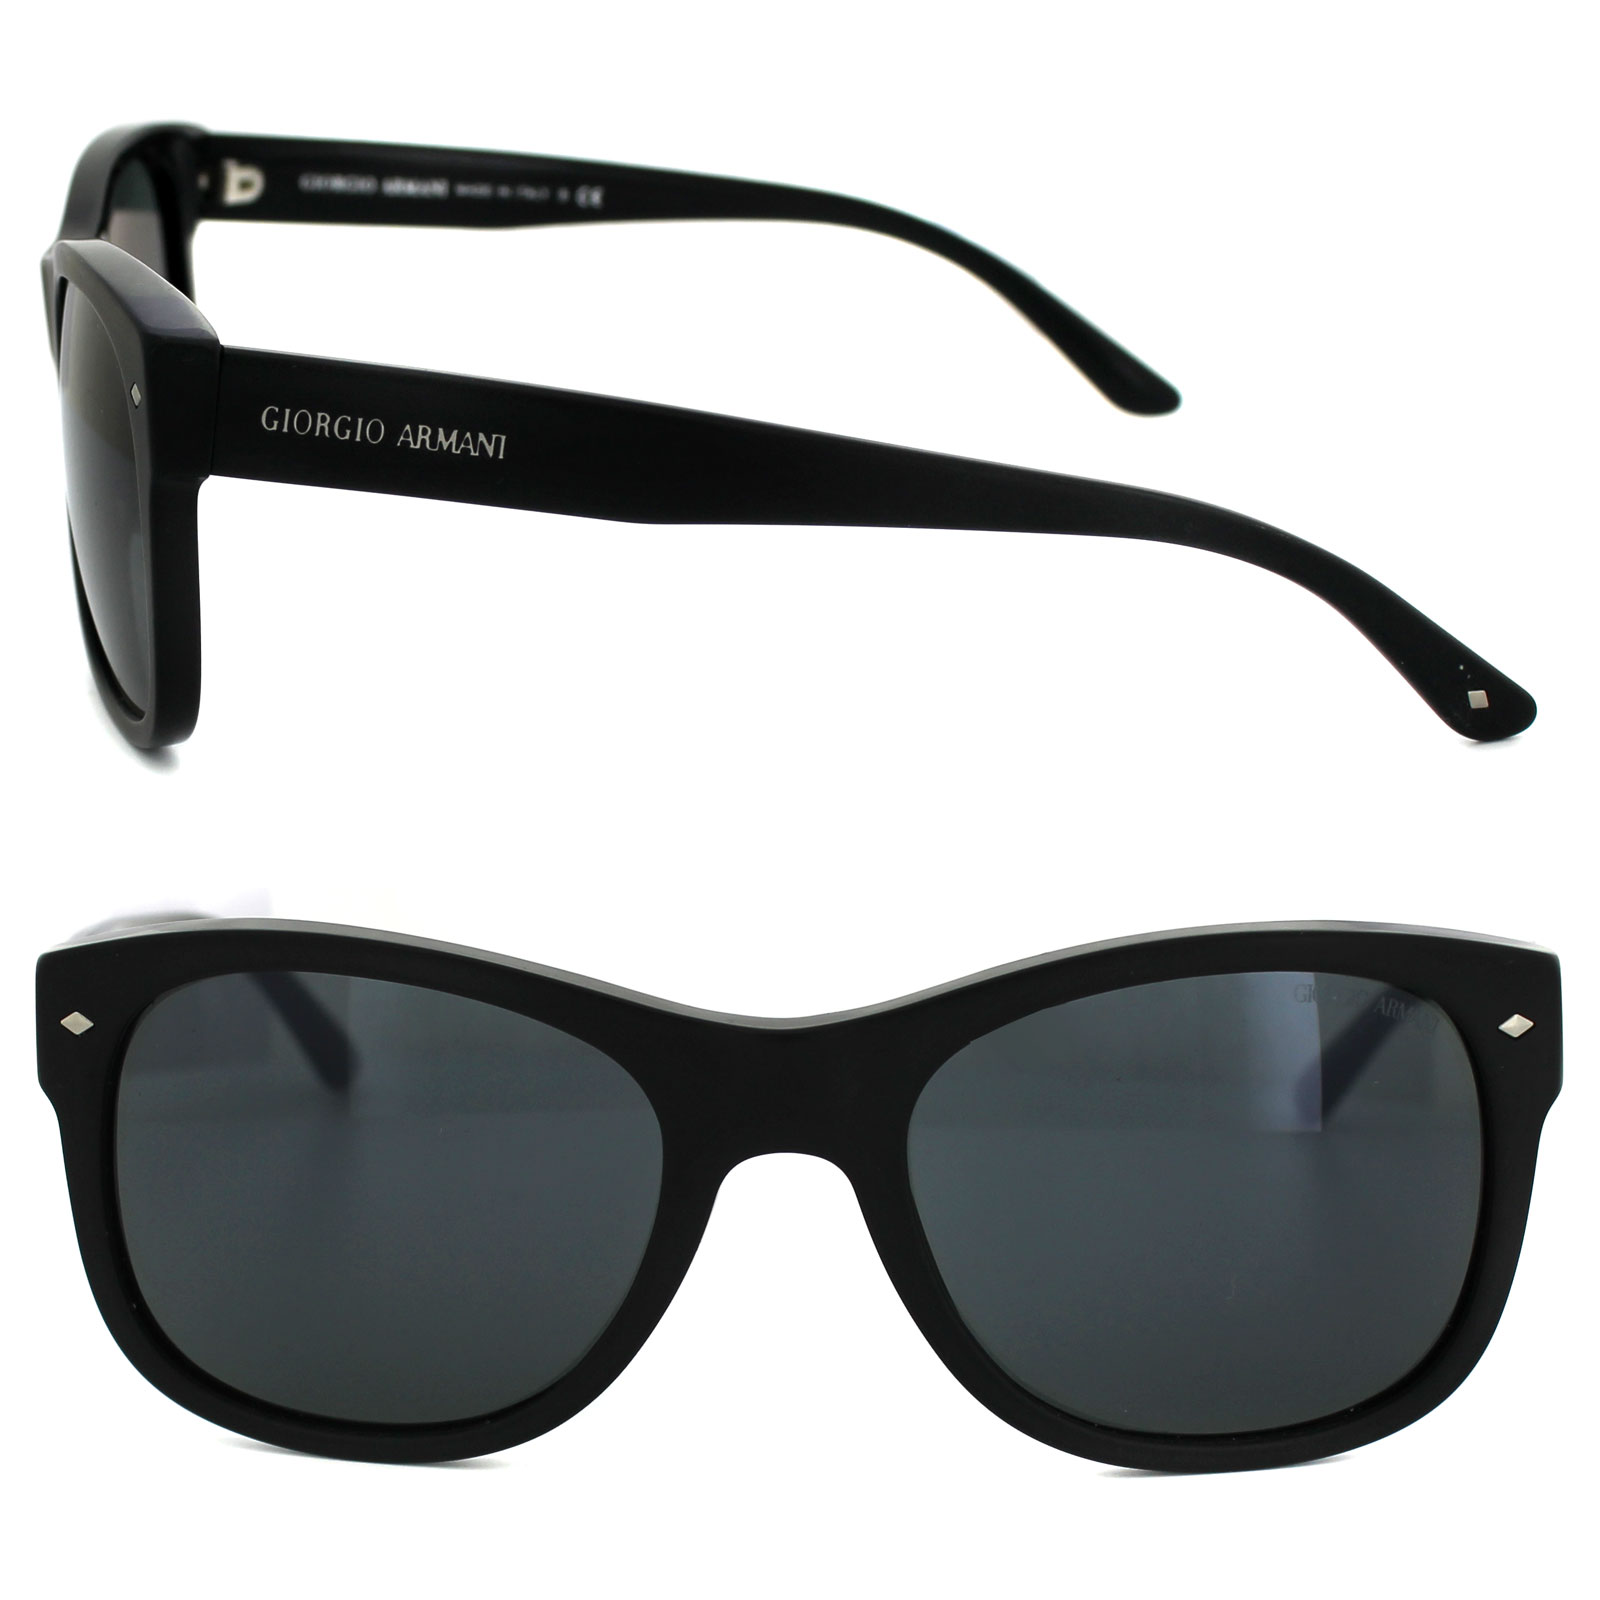 Cheap Giorgio Armani Ar8008 Sunglasses Discounted Sunglasses